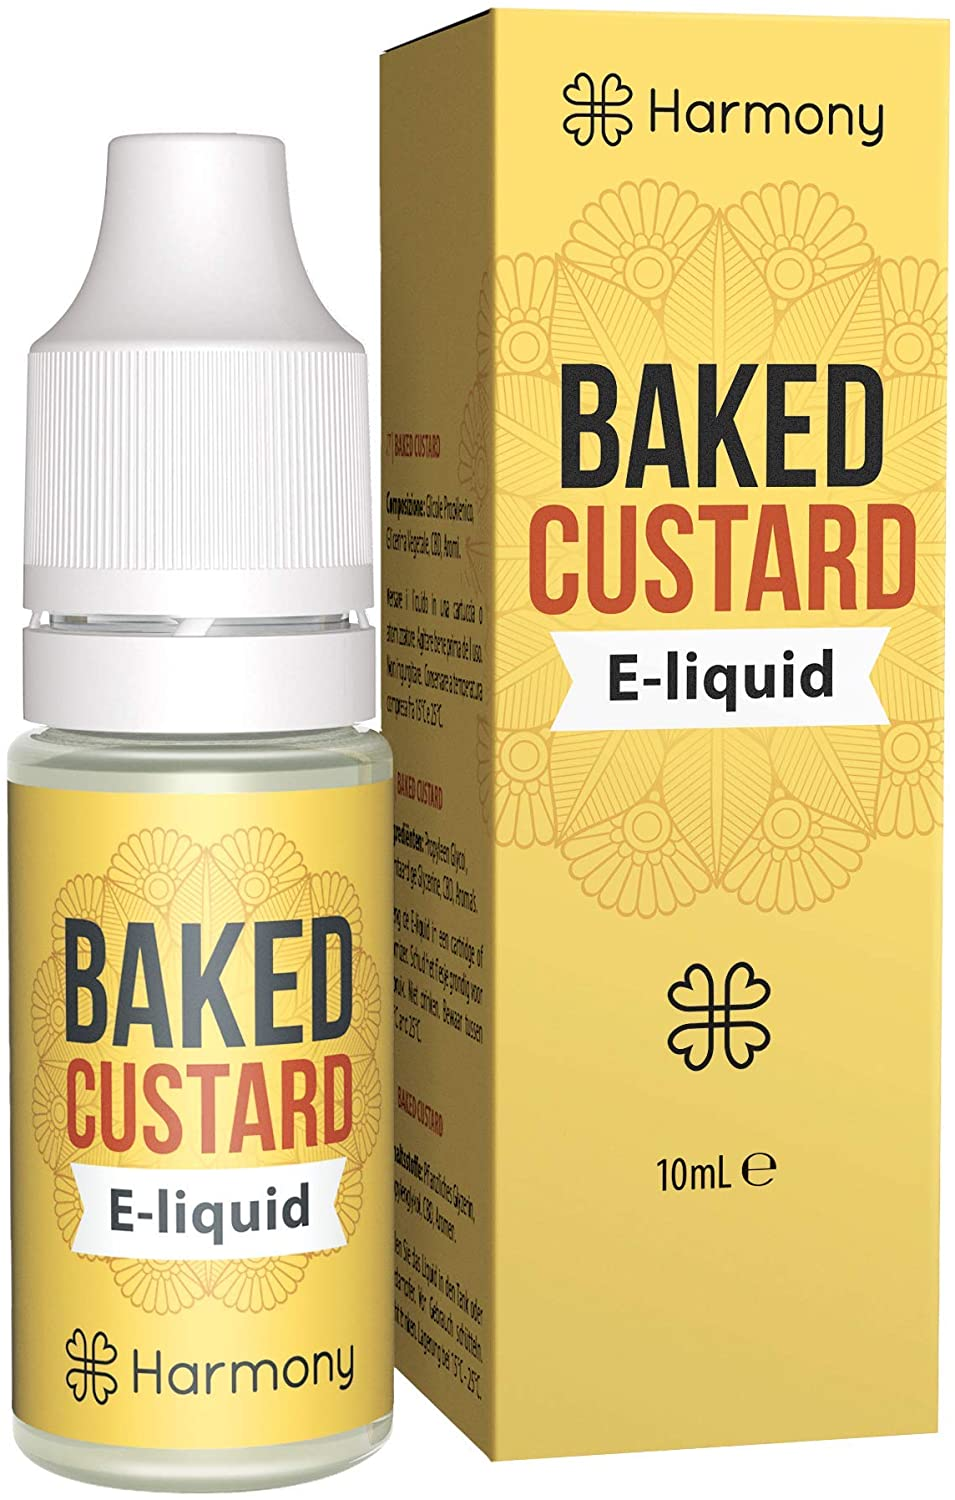 Harmony CBD Baked Custard E-Liquid 10ml